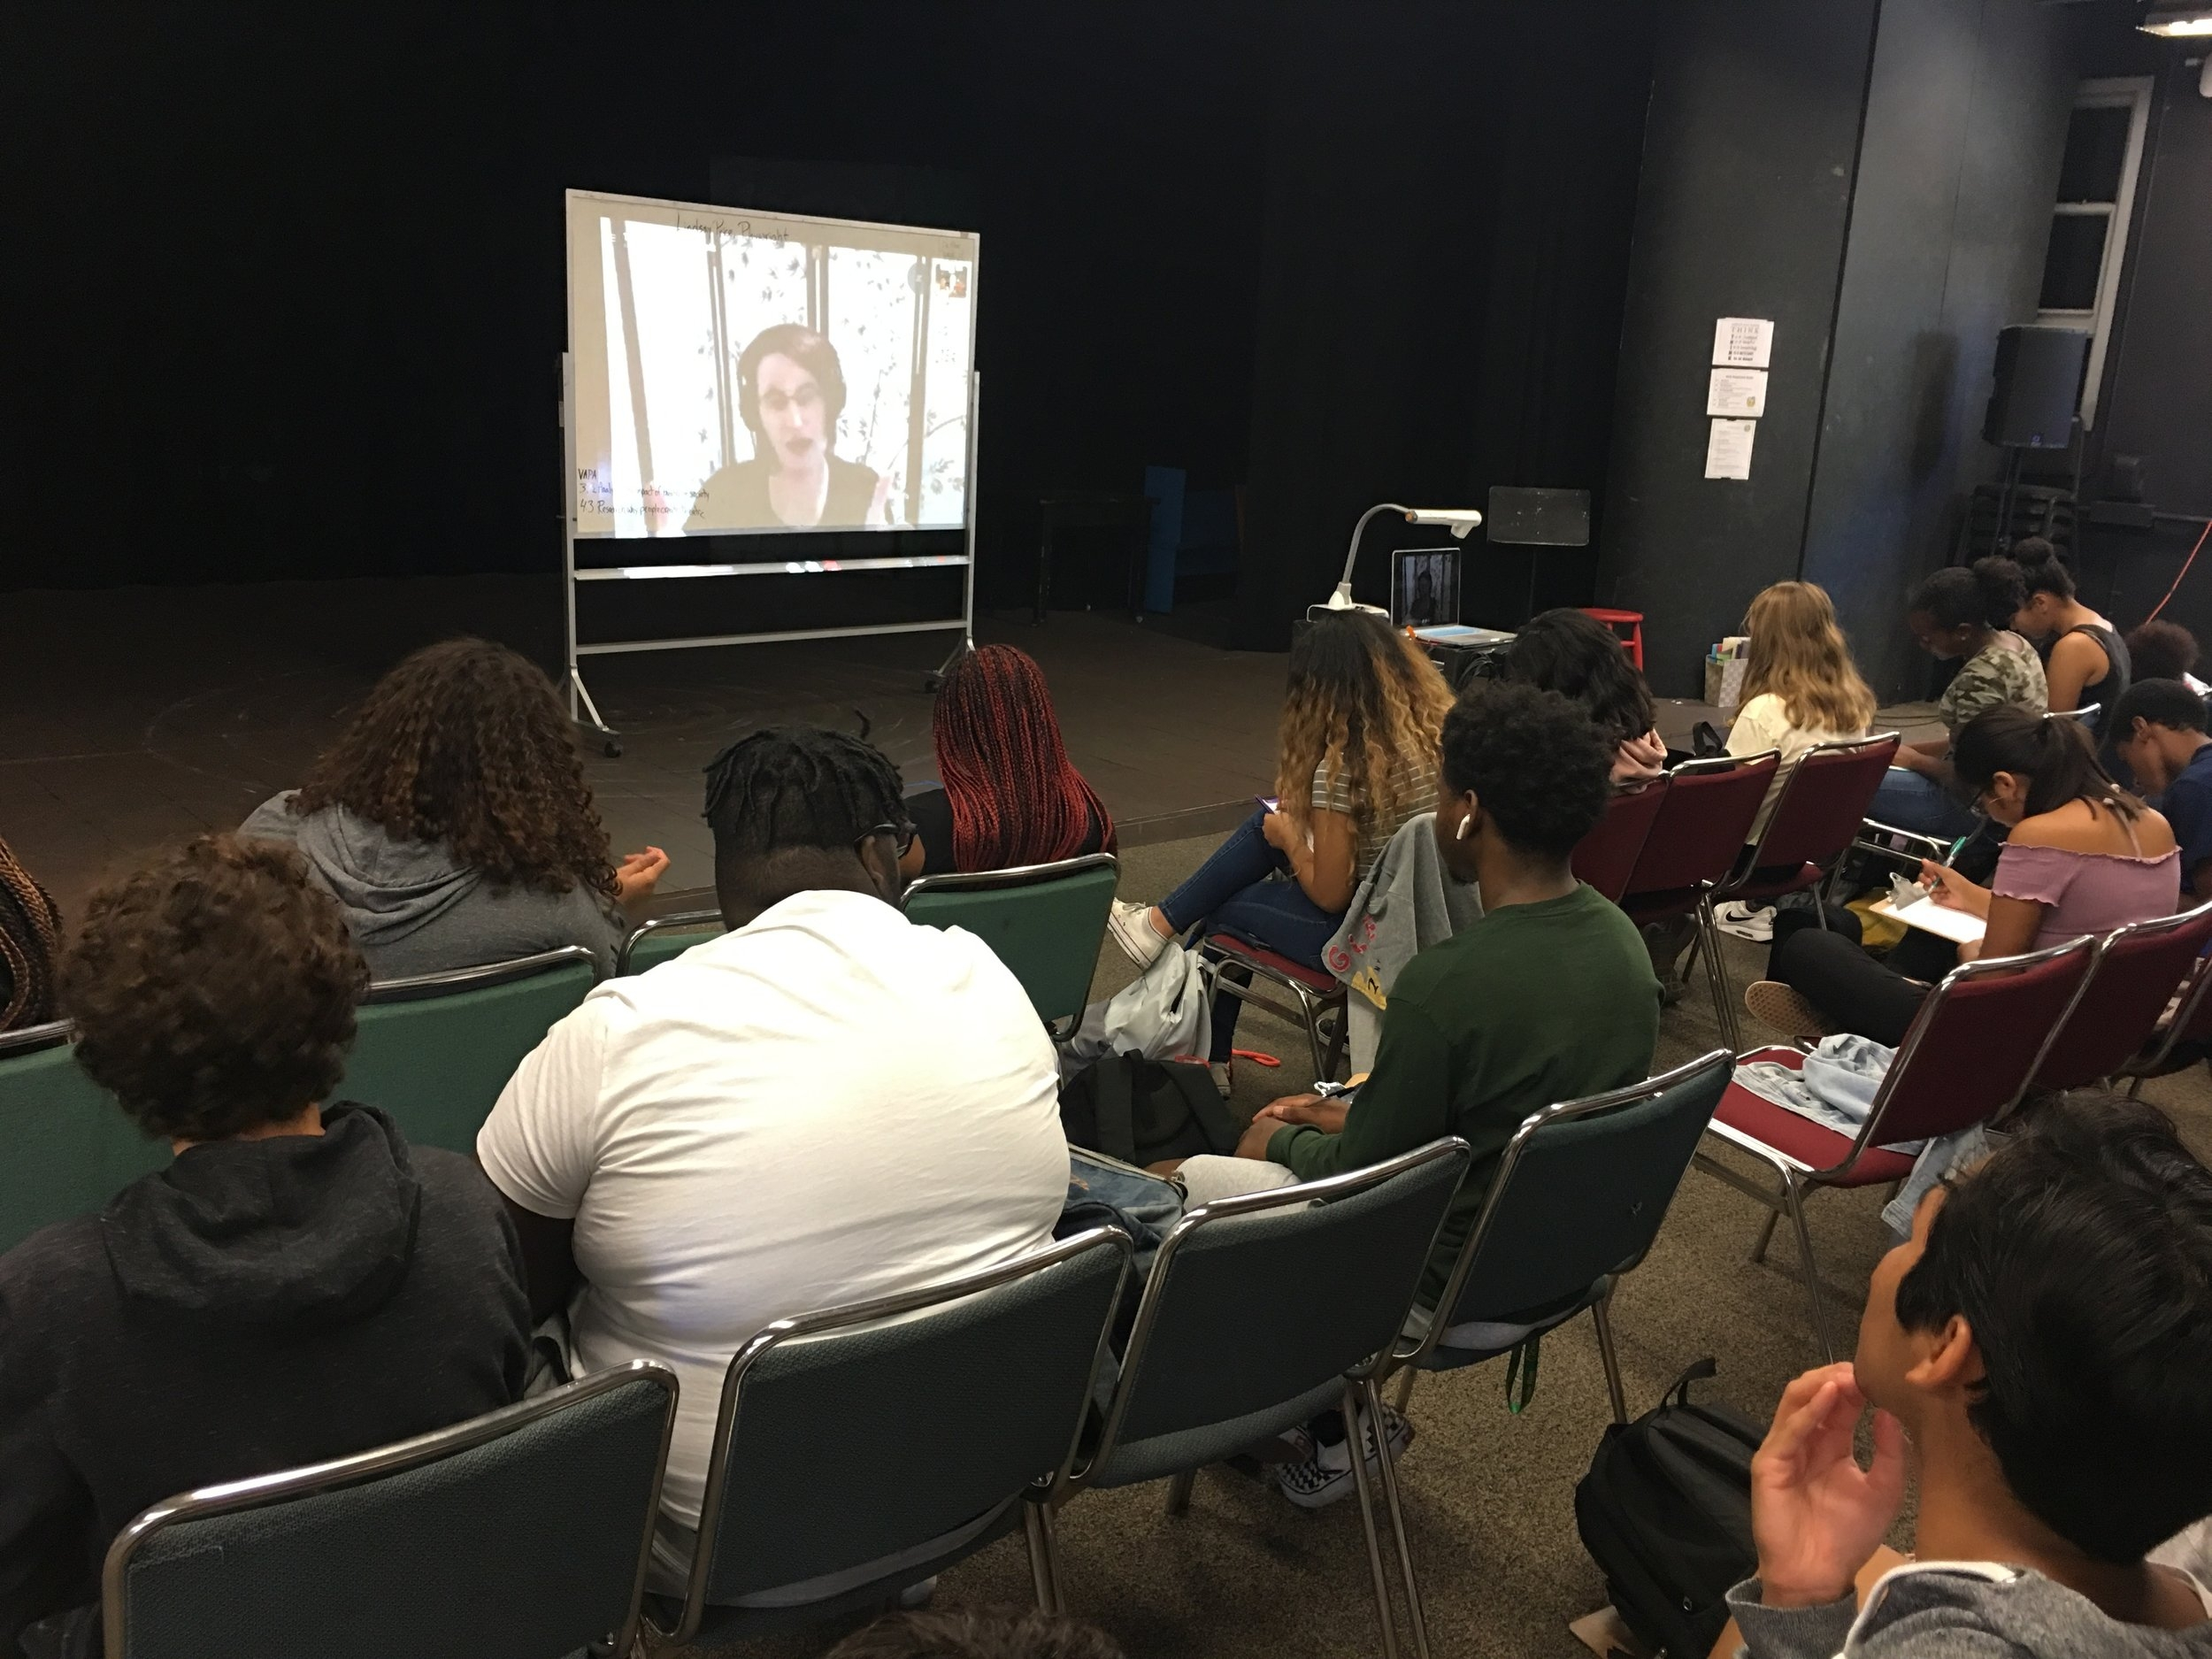 """Advanced"" class during Skype Interview with Playwright, Lindsay Price, who has written over 200 plays, including   darklight,   the play which IA students are currently rehearsing for our health department."